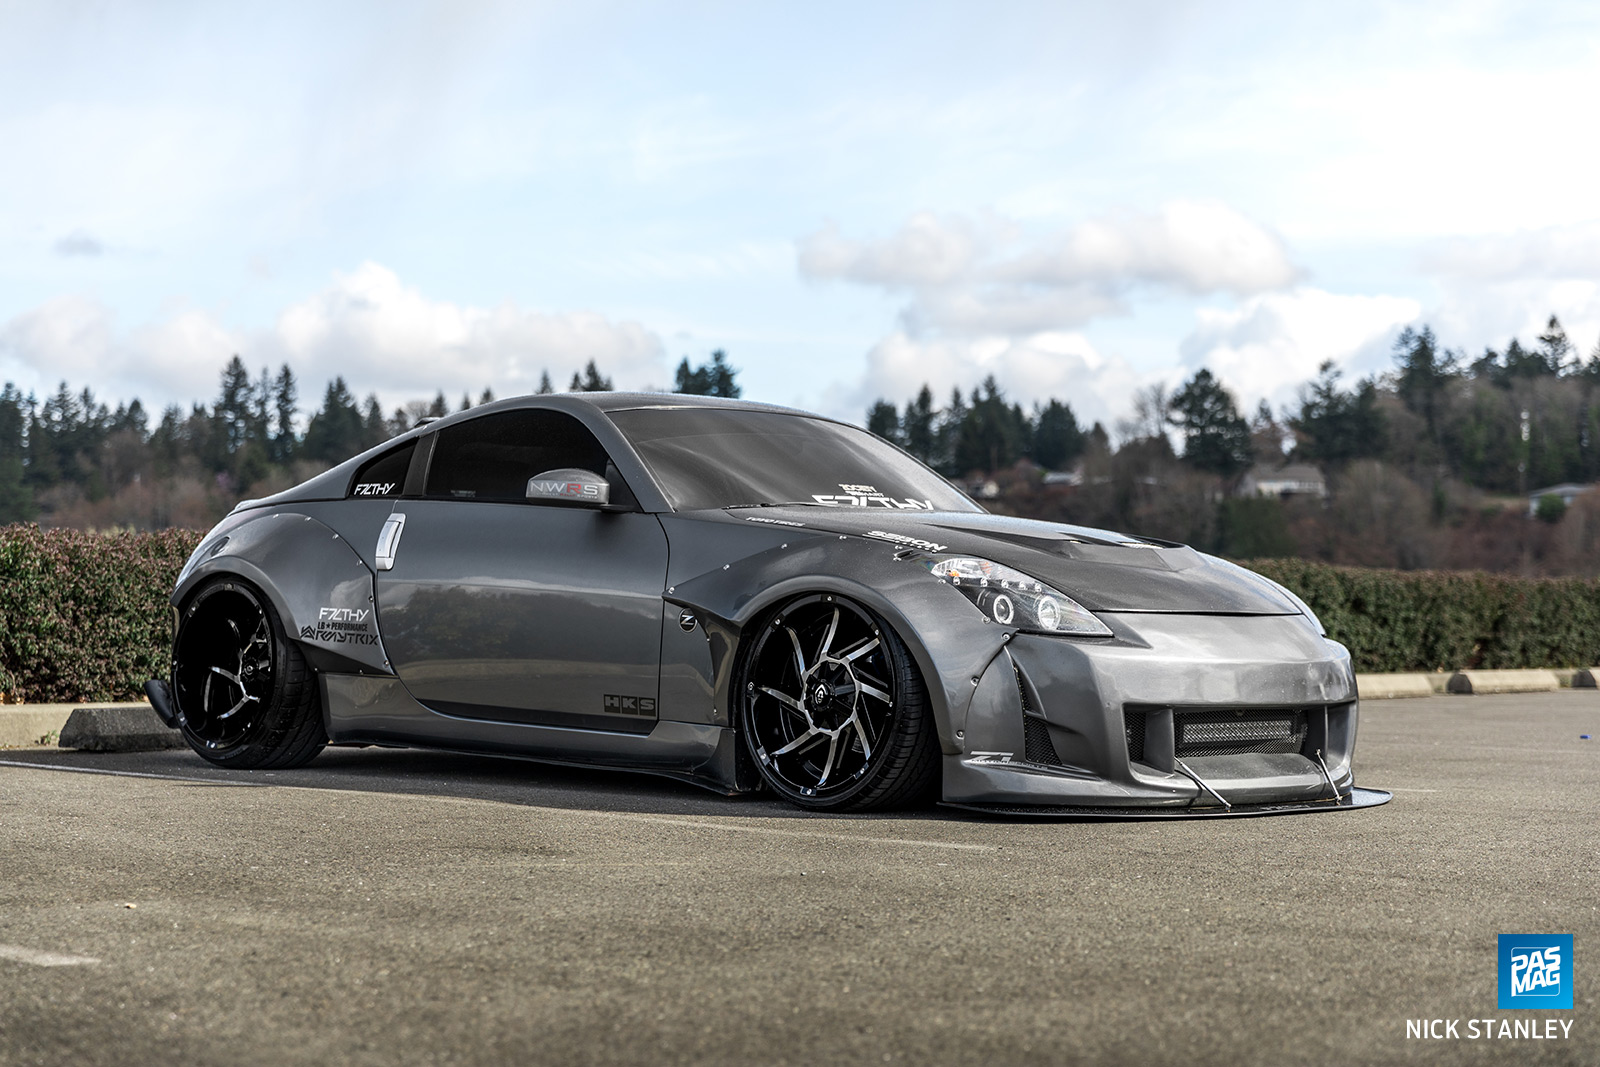 04 Jake Harn 2003 Nissan 350Z Tuner Battlegrounds PASMAG